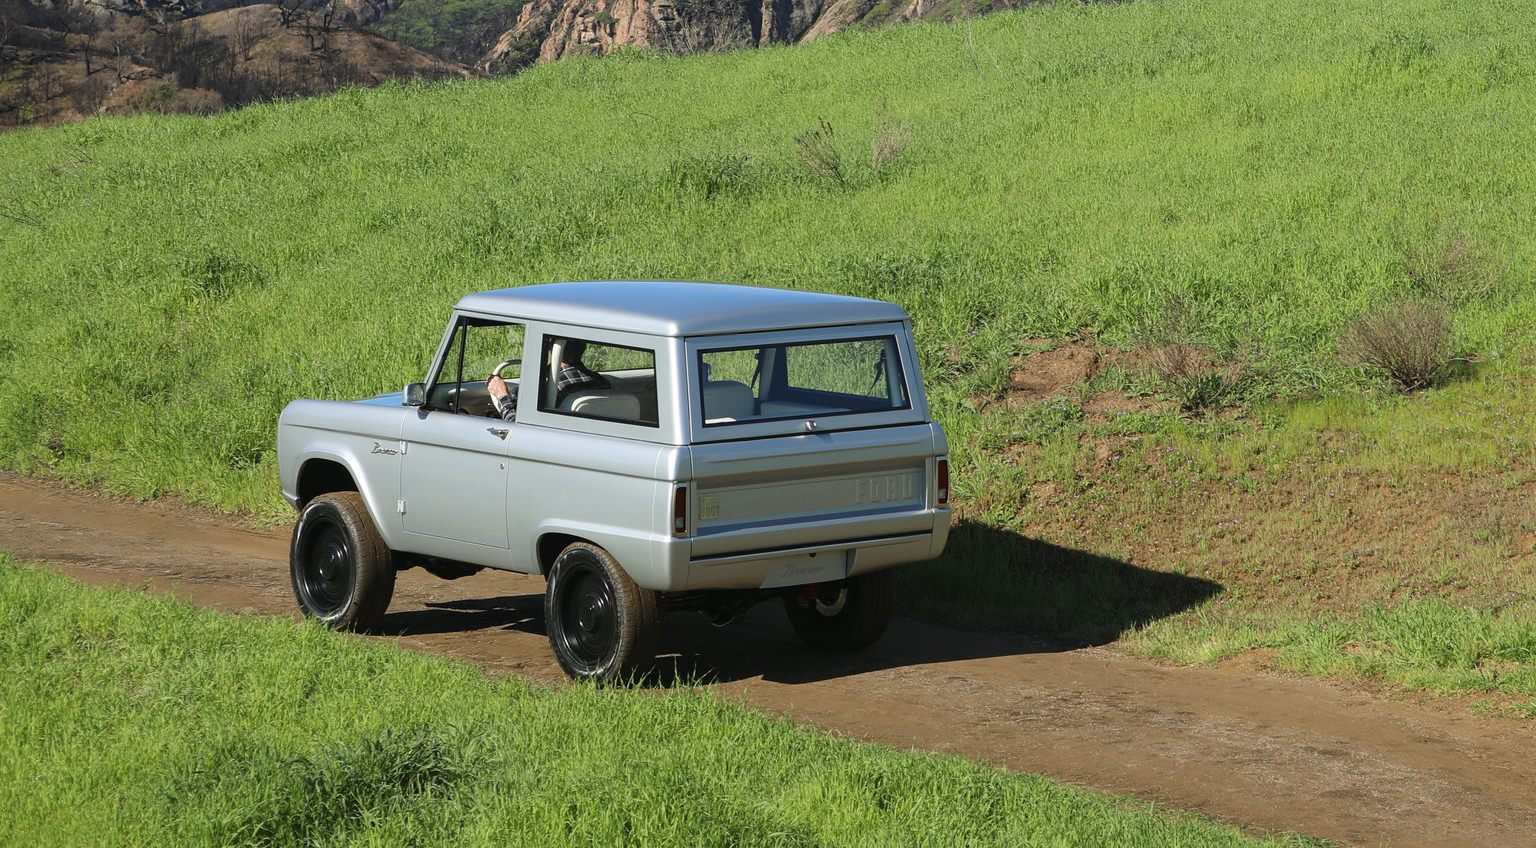 The All-Electric Classic Ford Bronco By Zero Labs